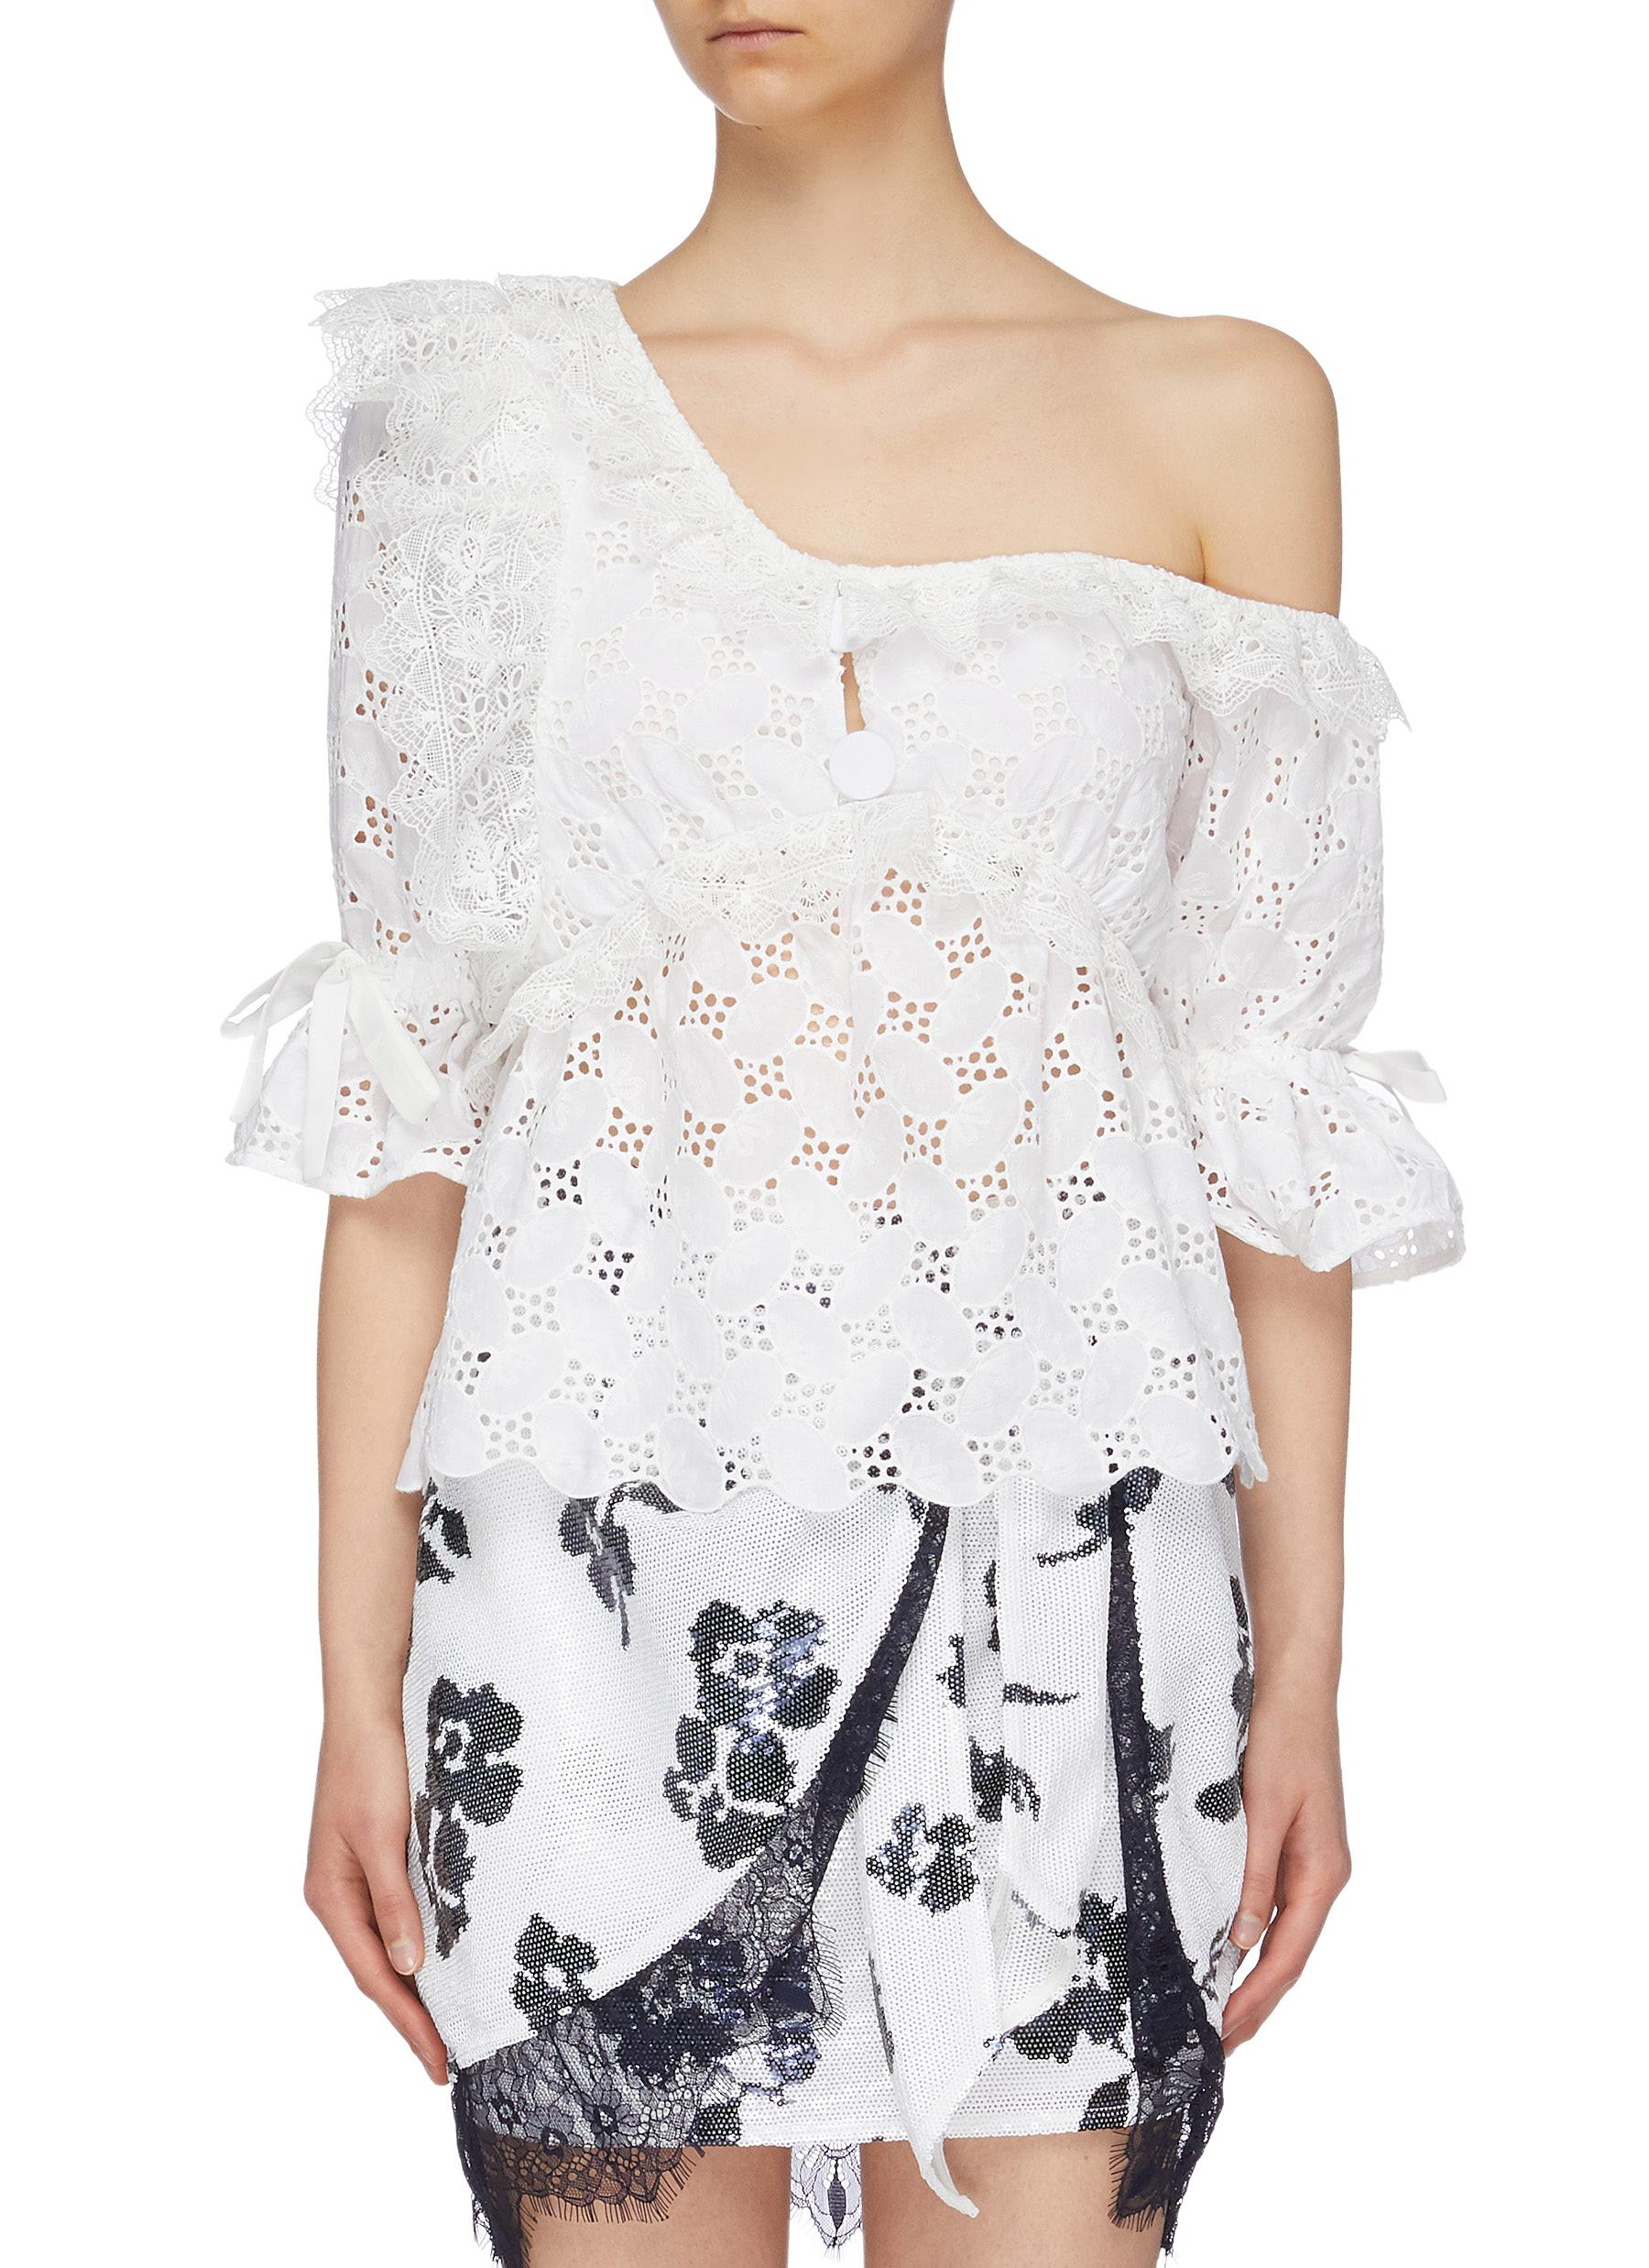 Bow cuff ruffle leaf broderie anglaise one-shoulder top by Self-Portrait